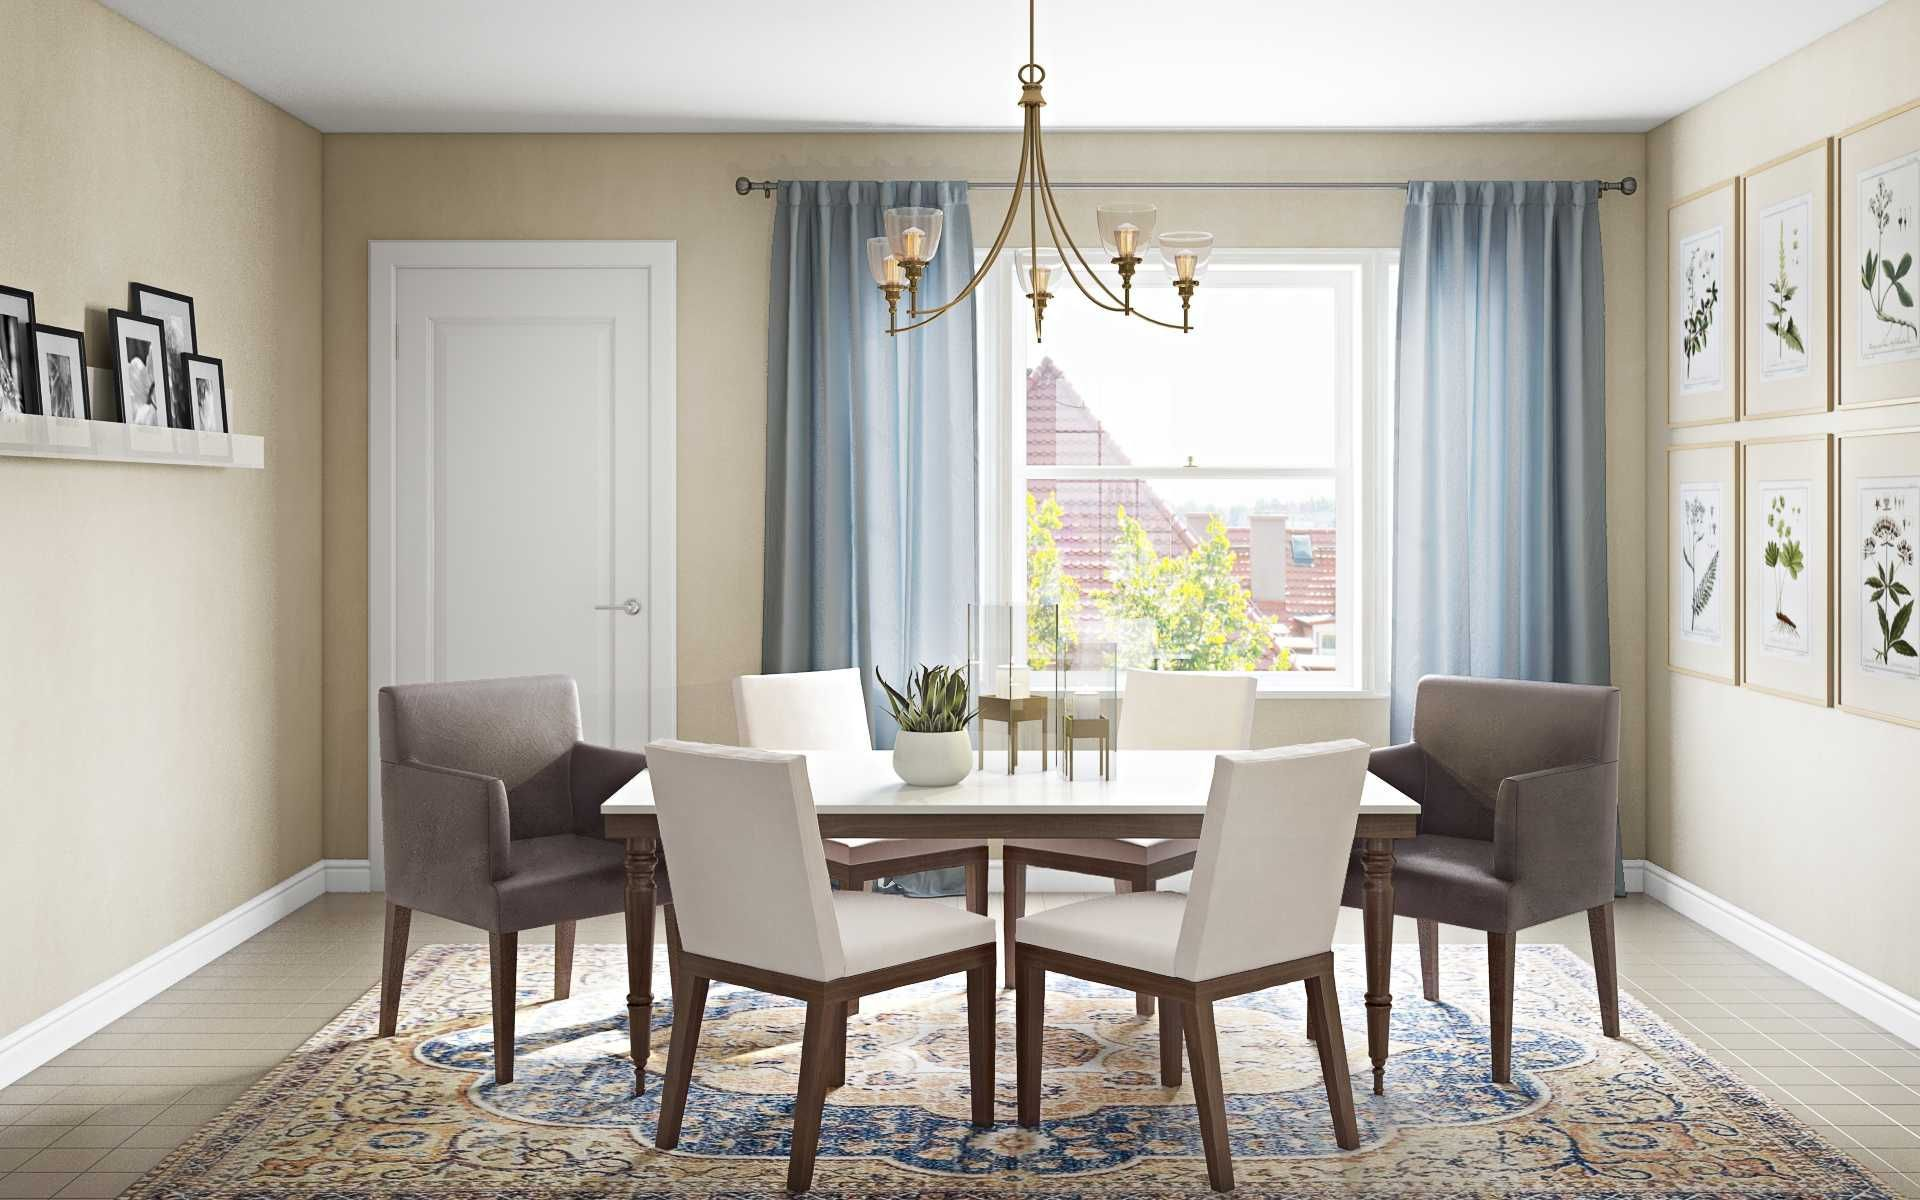 Classic Traditional Dining Room Design By Havenly Interior Designer Fendy Dining Room Design Interior Design Traditional Dining Room